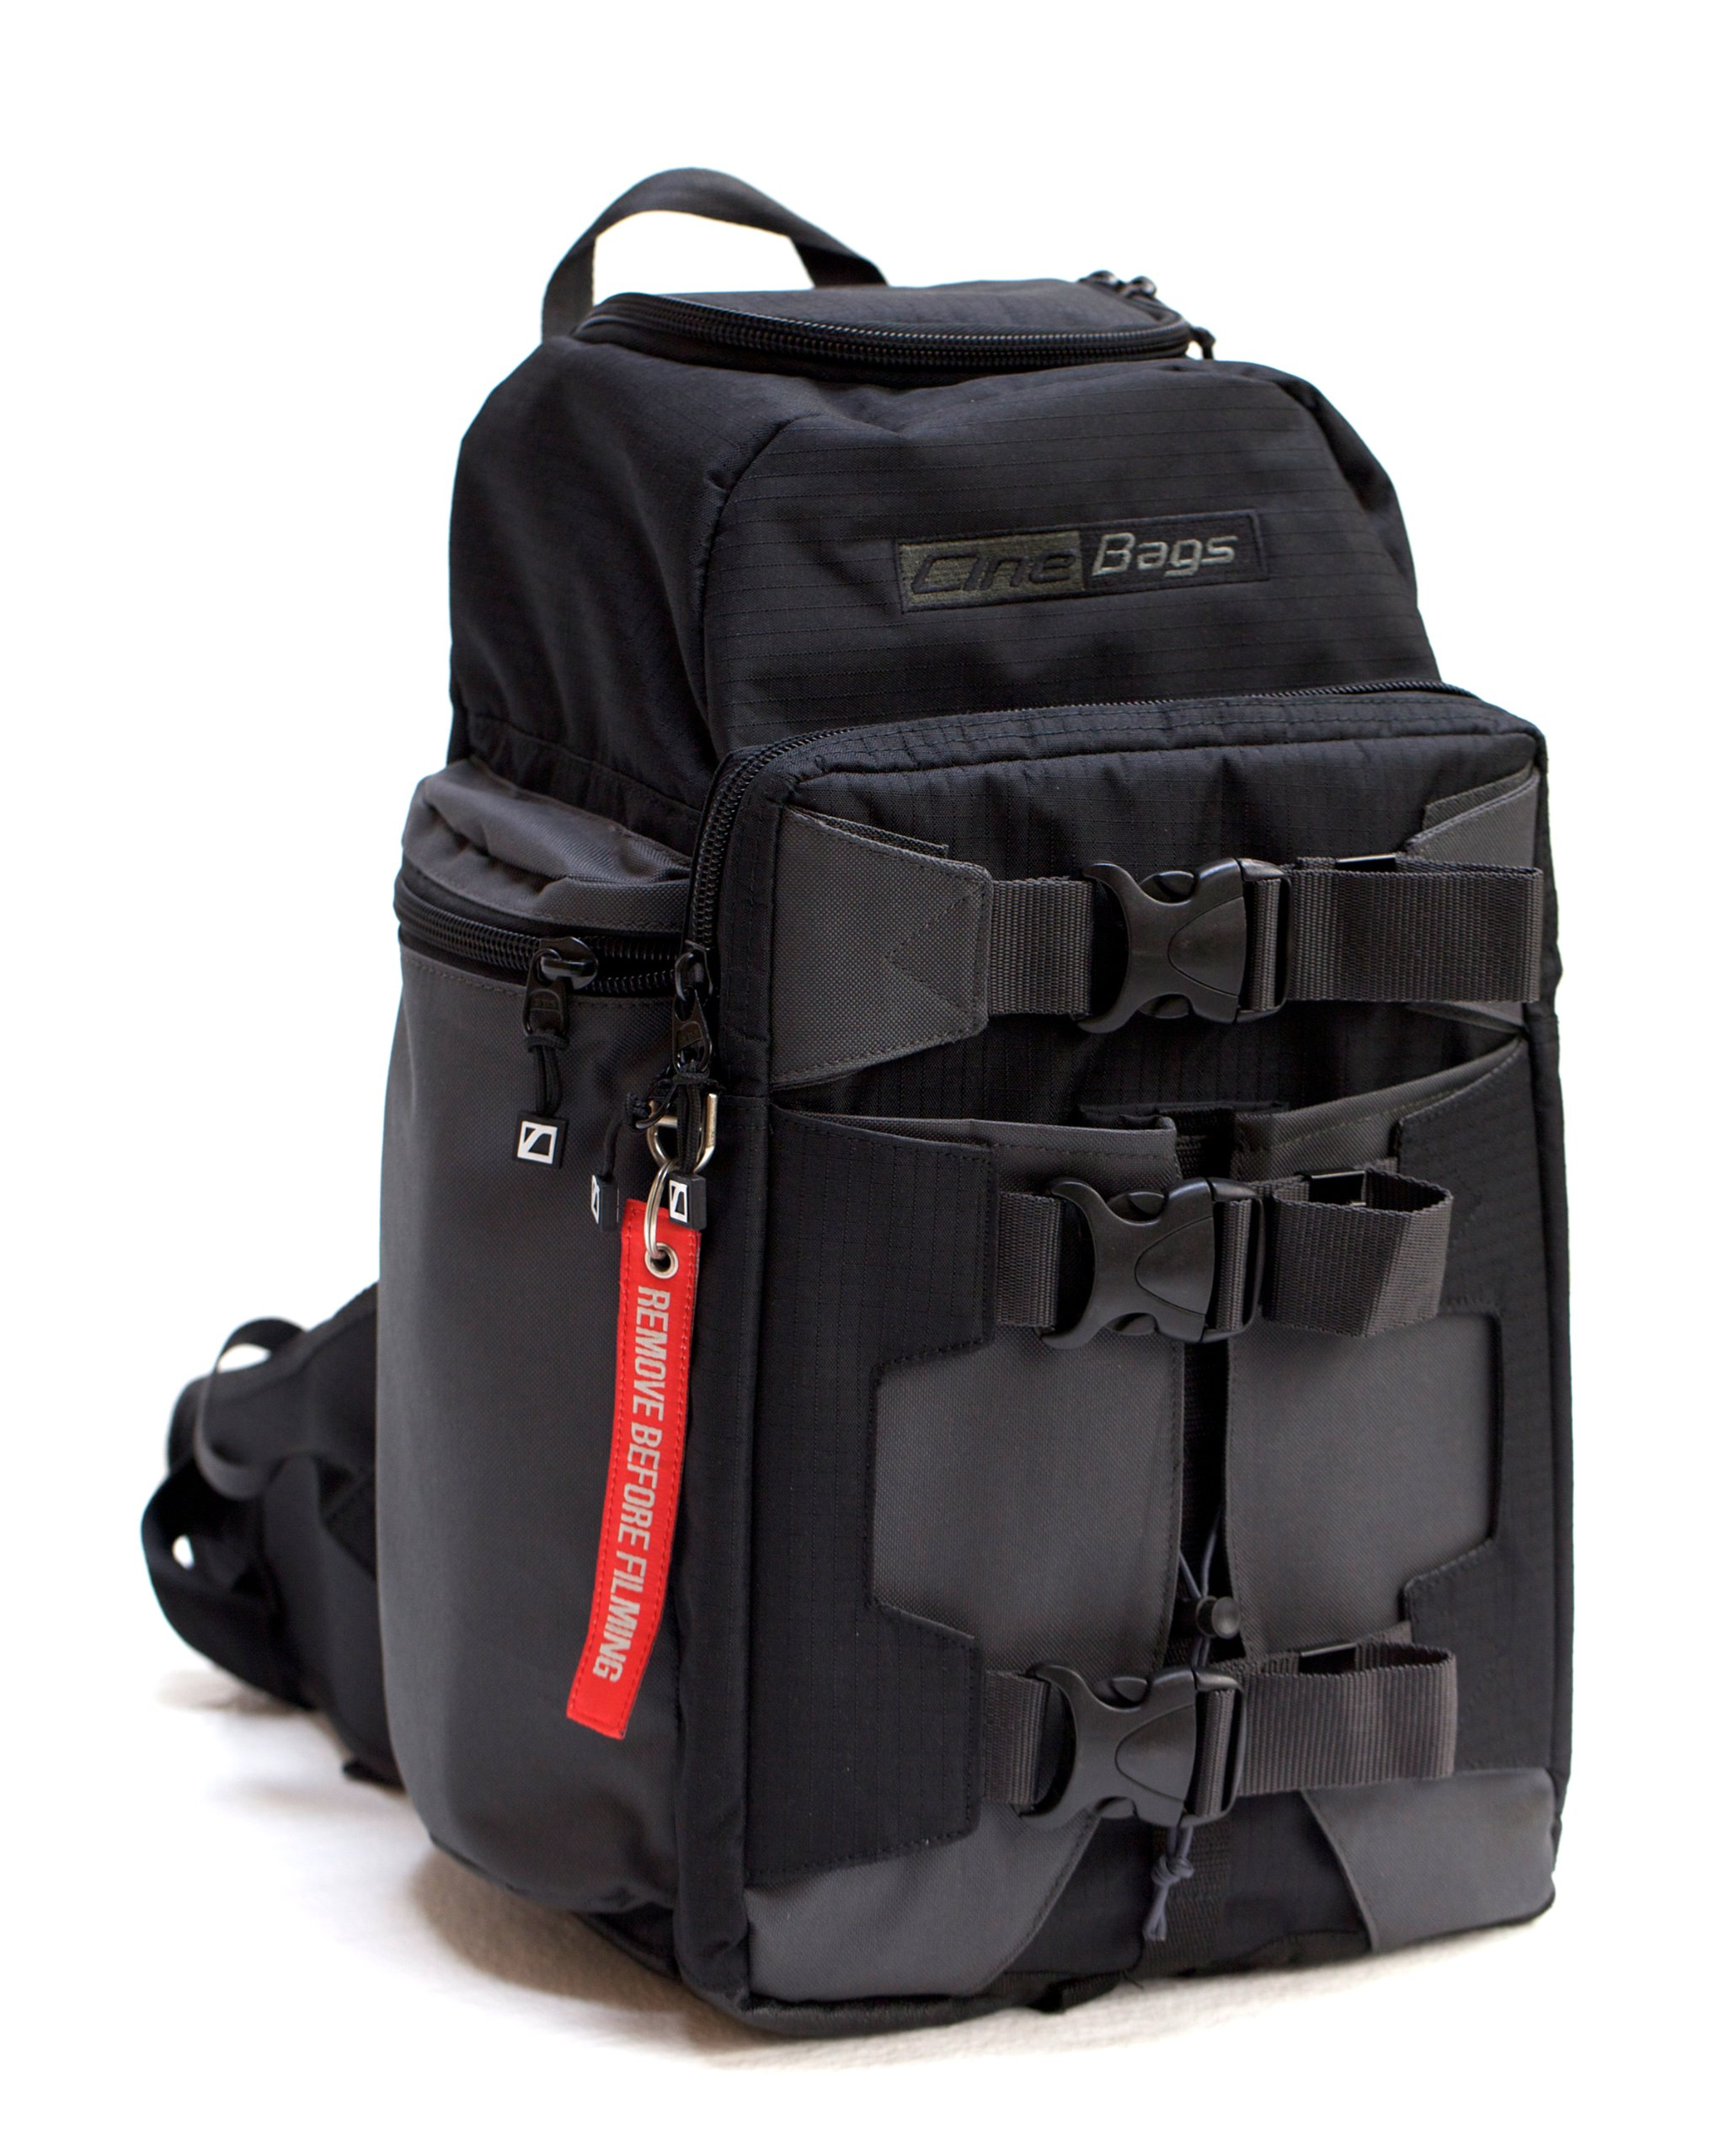 Cinebags DSLR/HD Backpack CB23 by CineBags